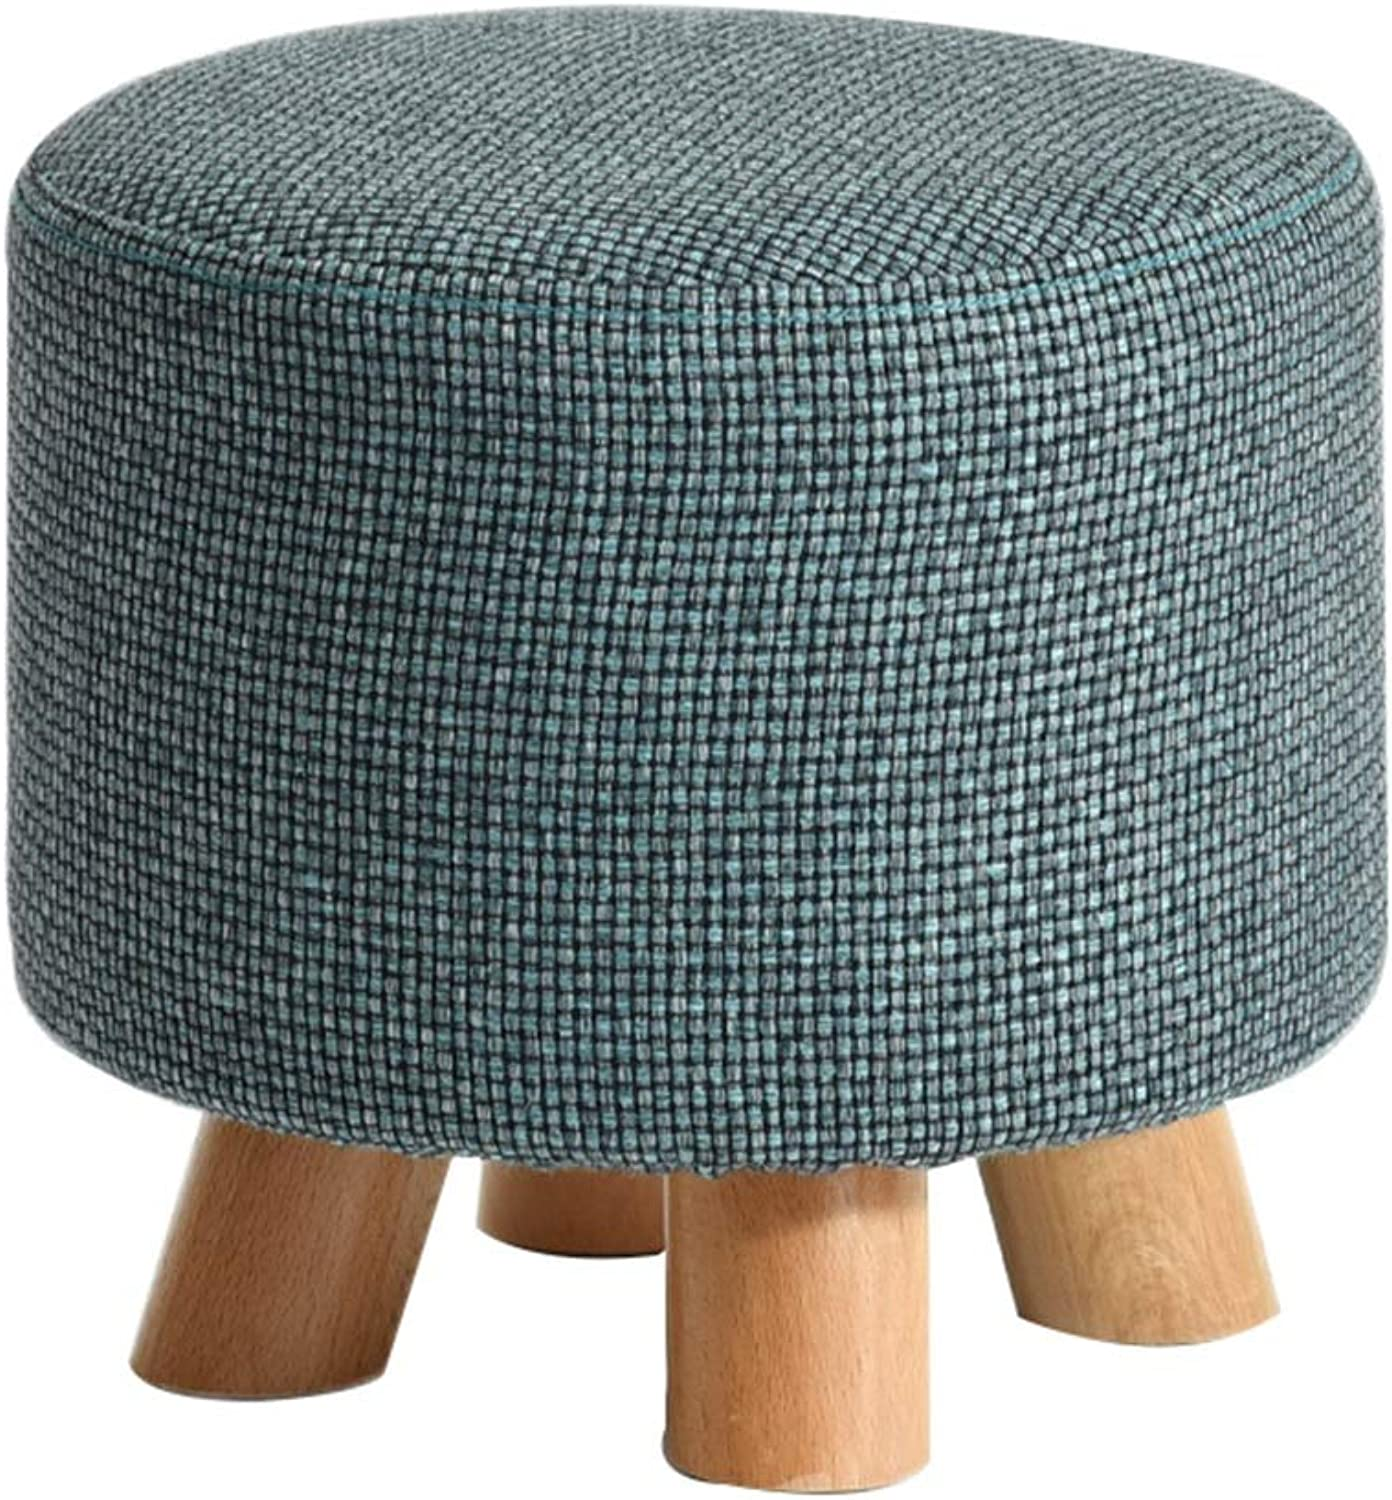 Stools Stools Natural Cotton and Linen Solid Wood Stools Green Reinforced Non-Slip Living Room Home Stool (color   bluee, Size   29  29  25cm)